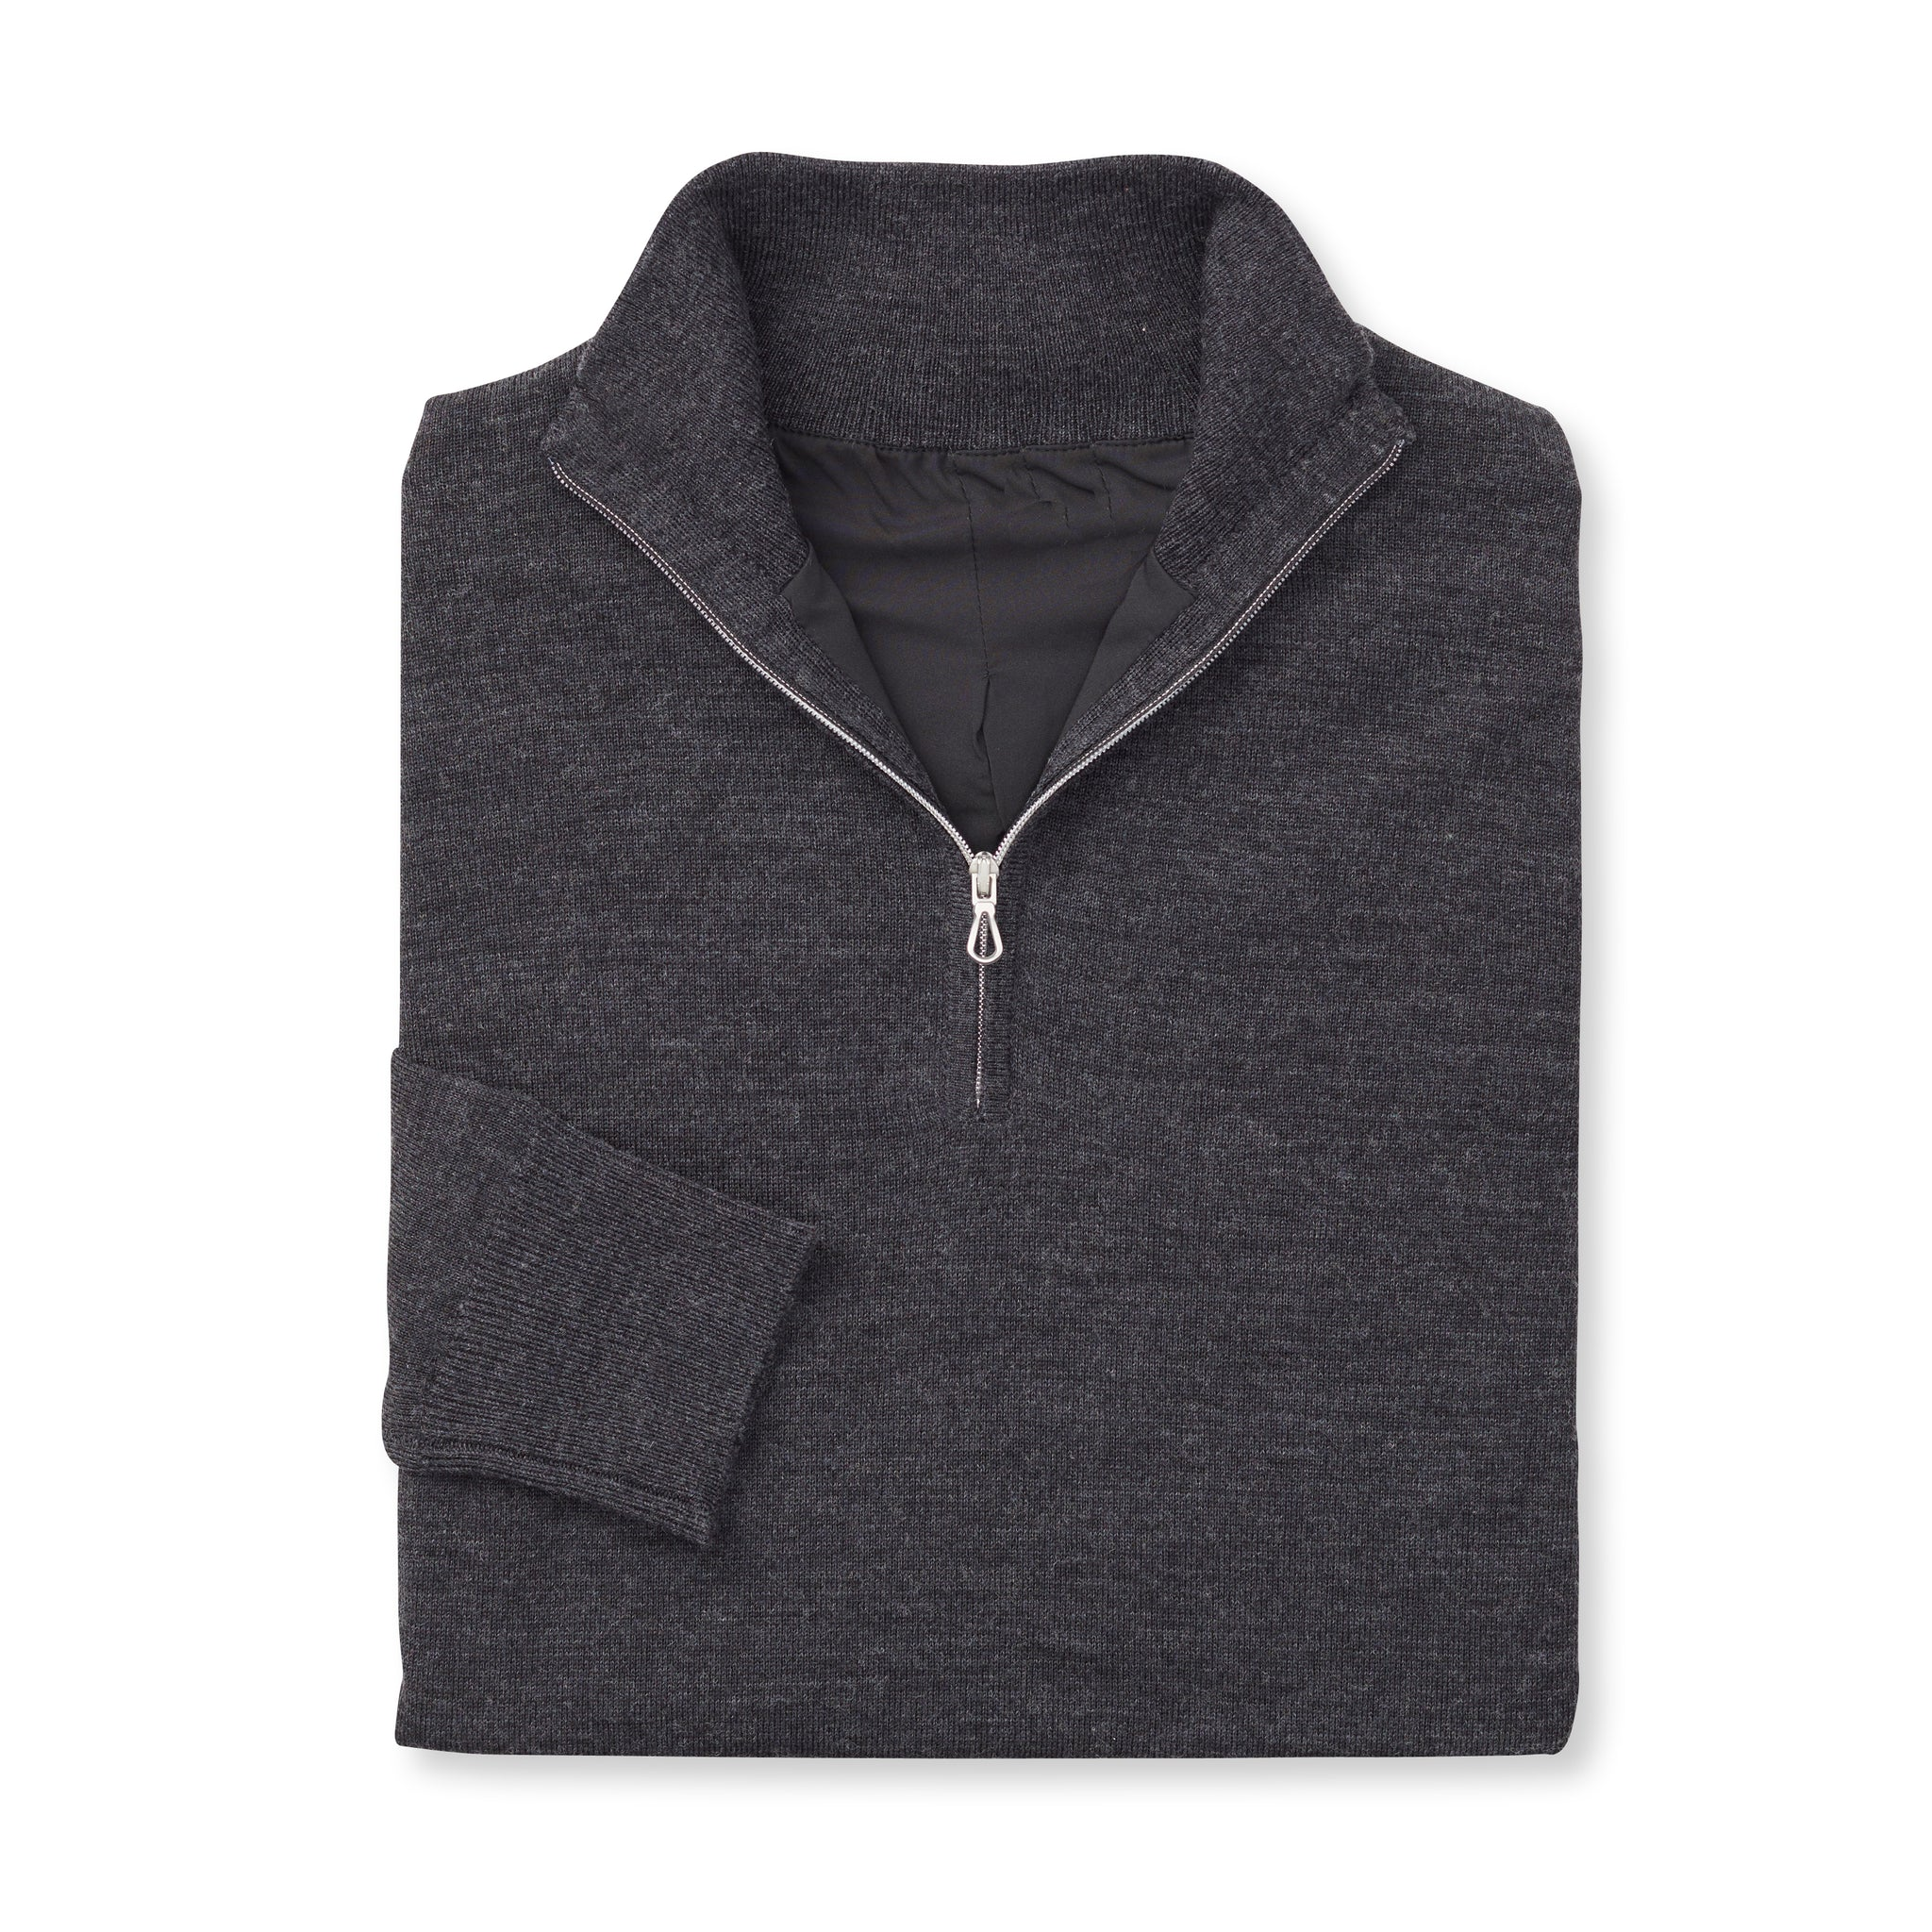 MERINO Wind Block Half-Zip Sweater - Black Heather IS75708HLS